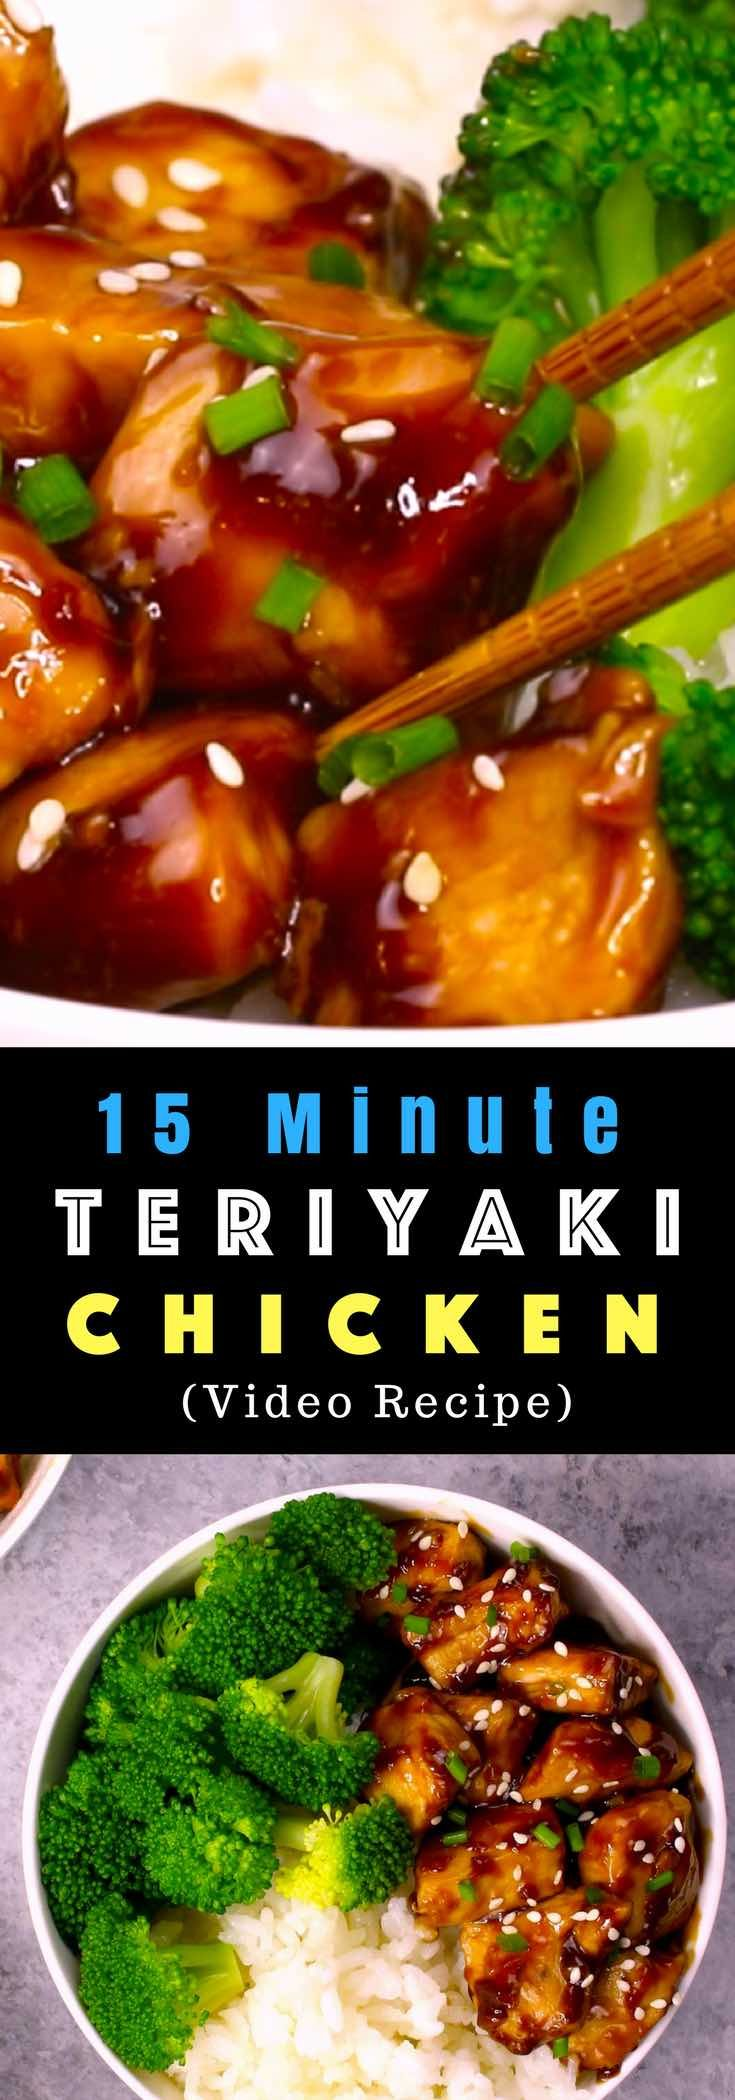 The easiest, most unbelievably delicious Teriyaki Chicken with Rice Bowls. And it'll be on your dinner table in just 15 minutes. It's much better than takeout! All you need is only a few ingredients: chicken breast, soy sauce, cider vinegar, honey and cornstarch. One of the best Asian dinner ideas! Served with rice and broccoli. Quick and easy dinner recipe. Video recipe.   Tipbuzz.com #Teriyaki #TeriyakiChicken #ChickenTeriyaki